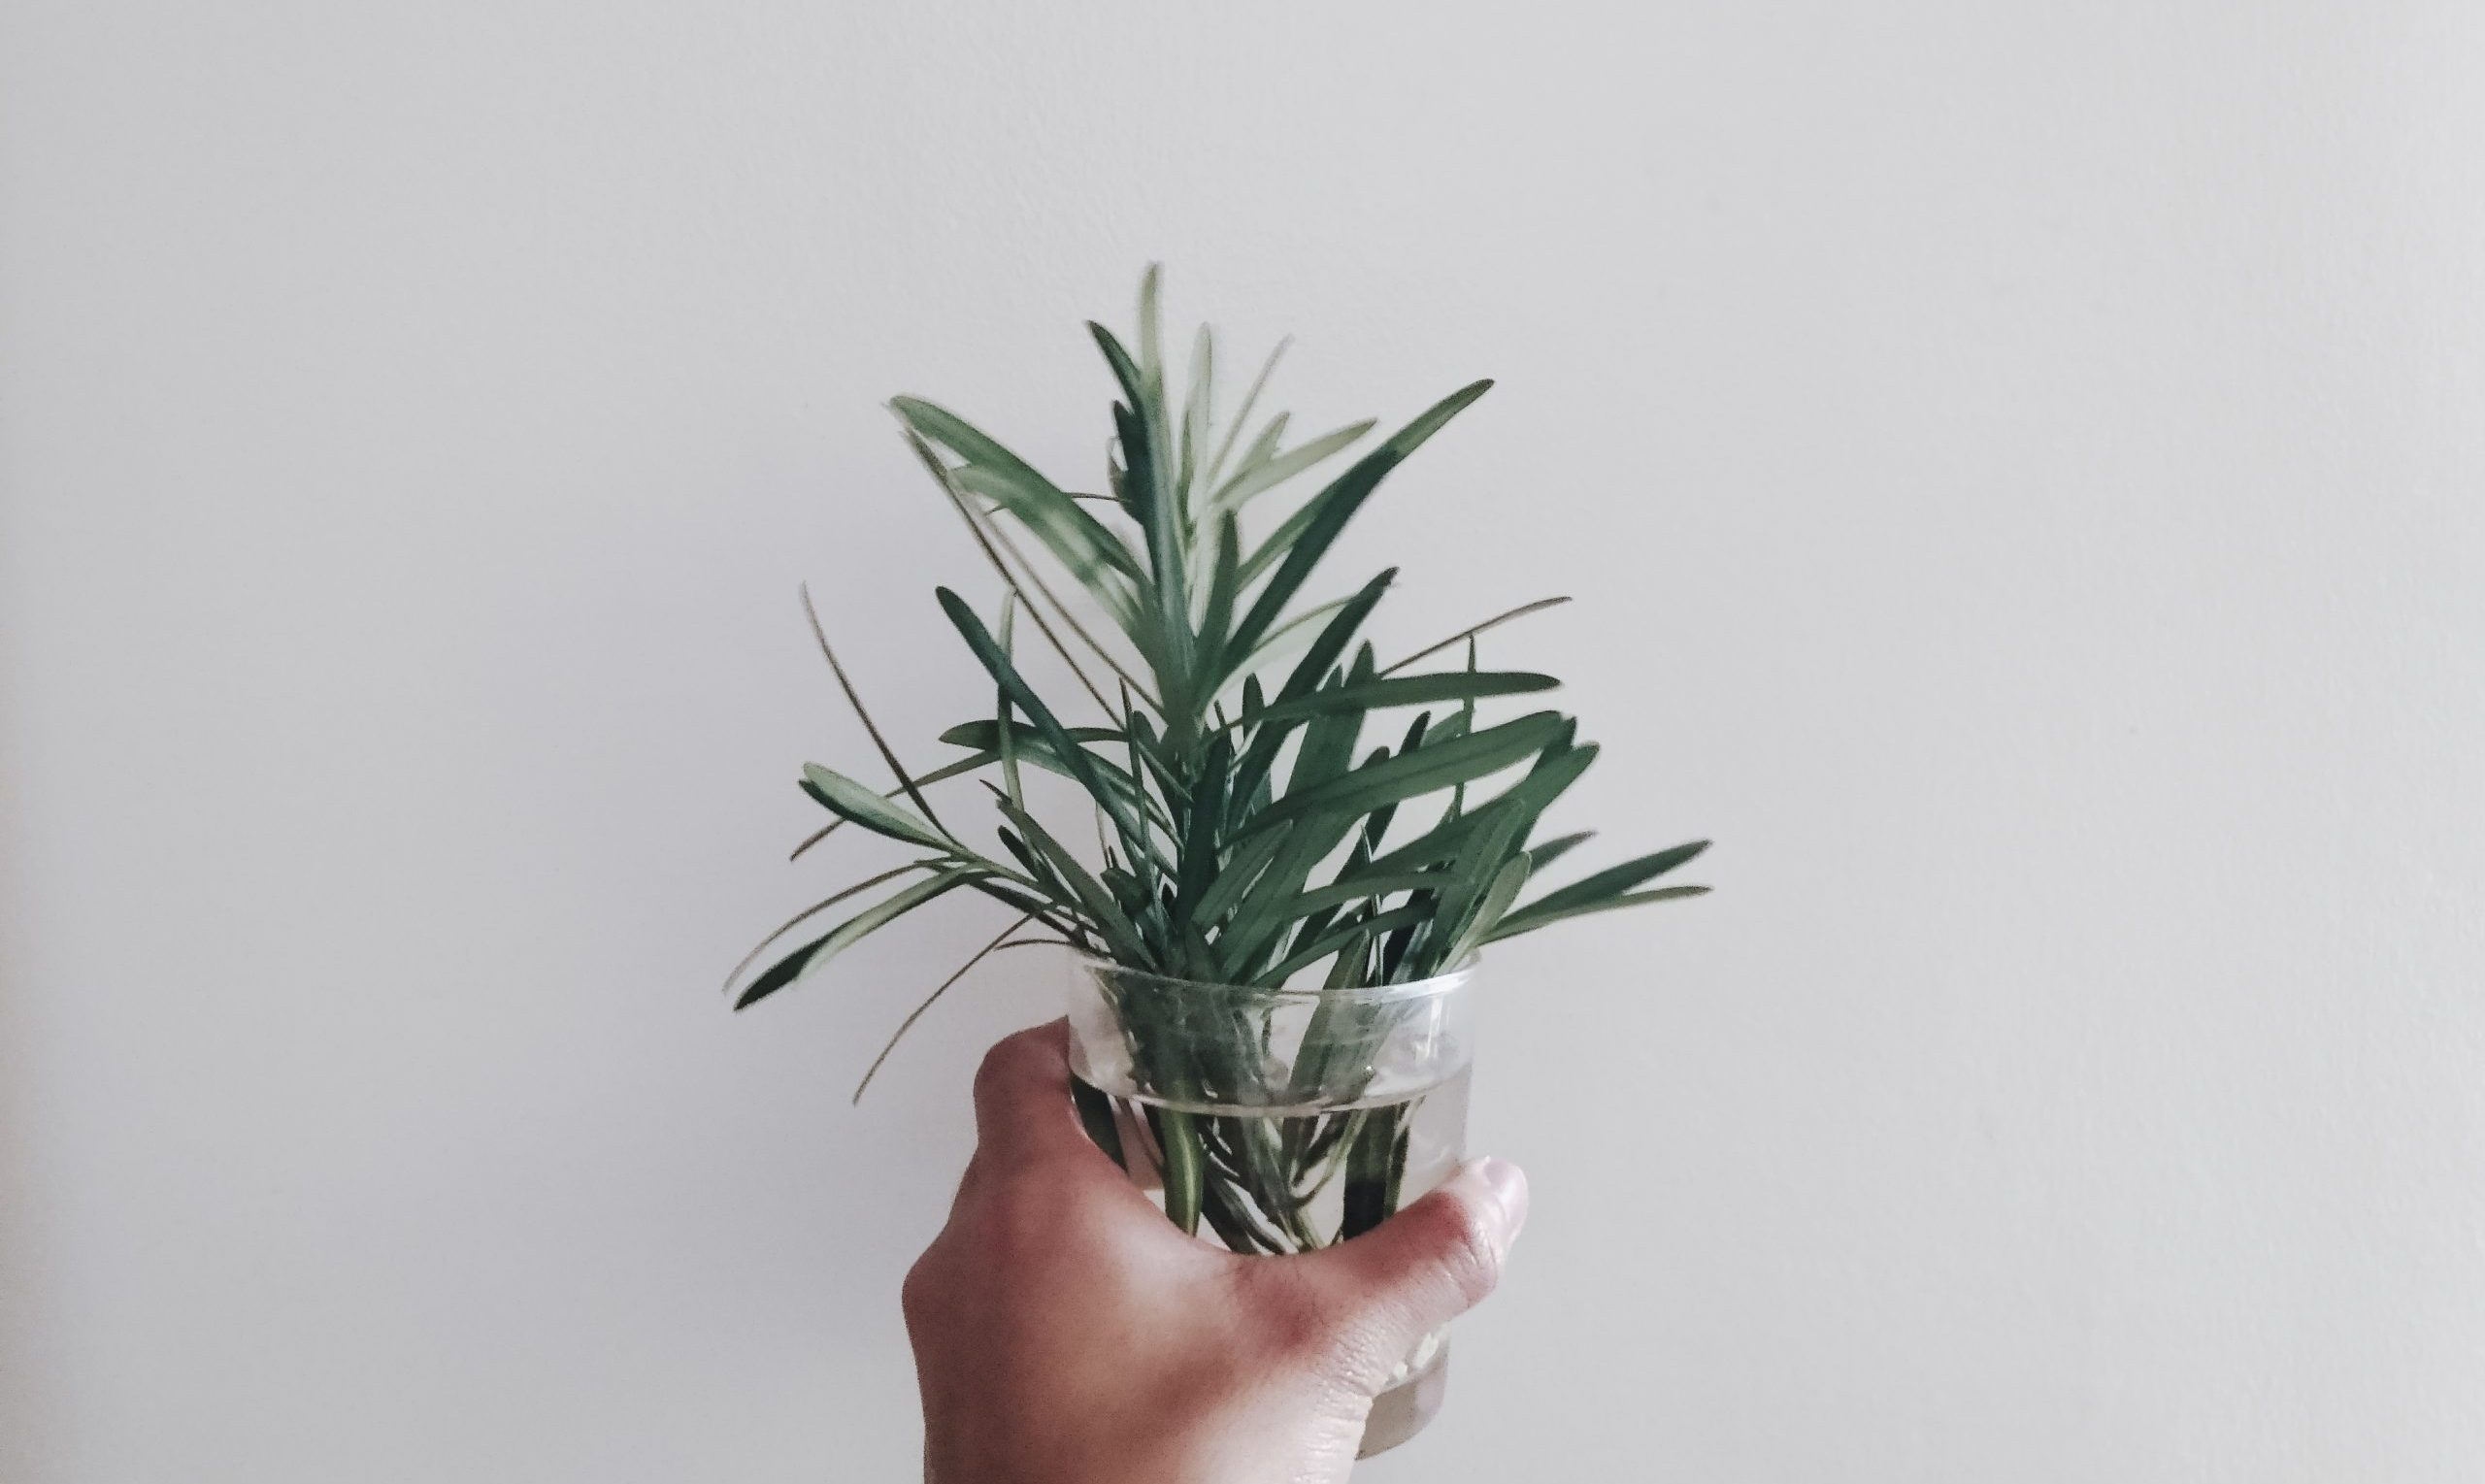 Canva - Person Holding Green Leaf Plant